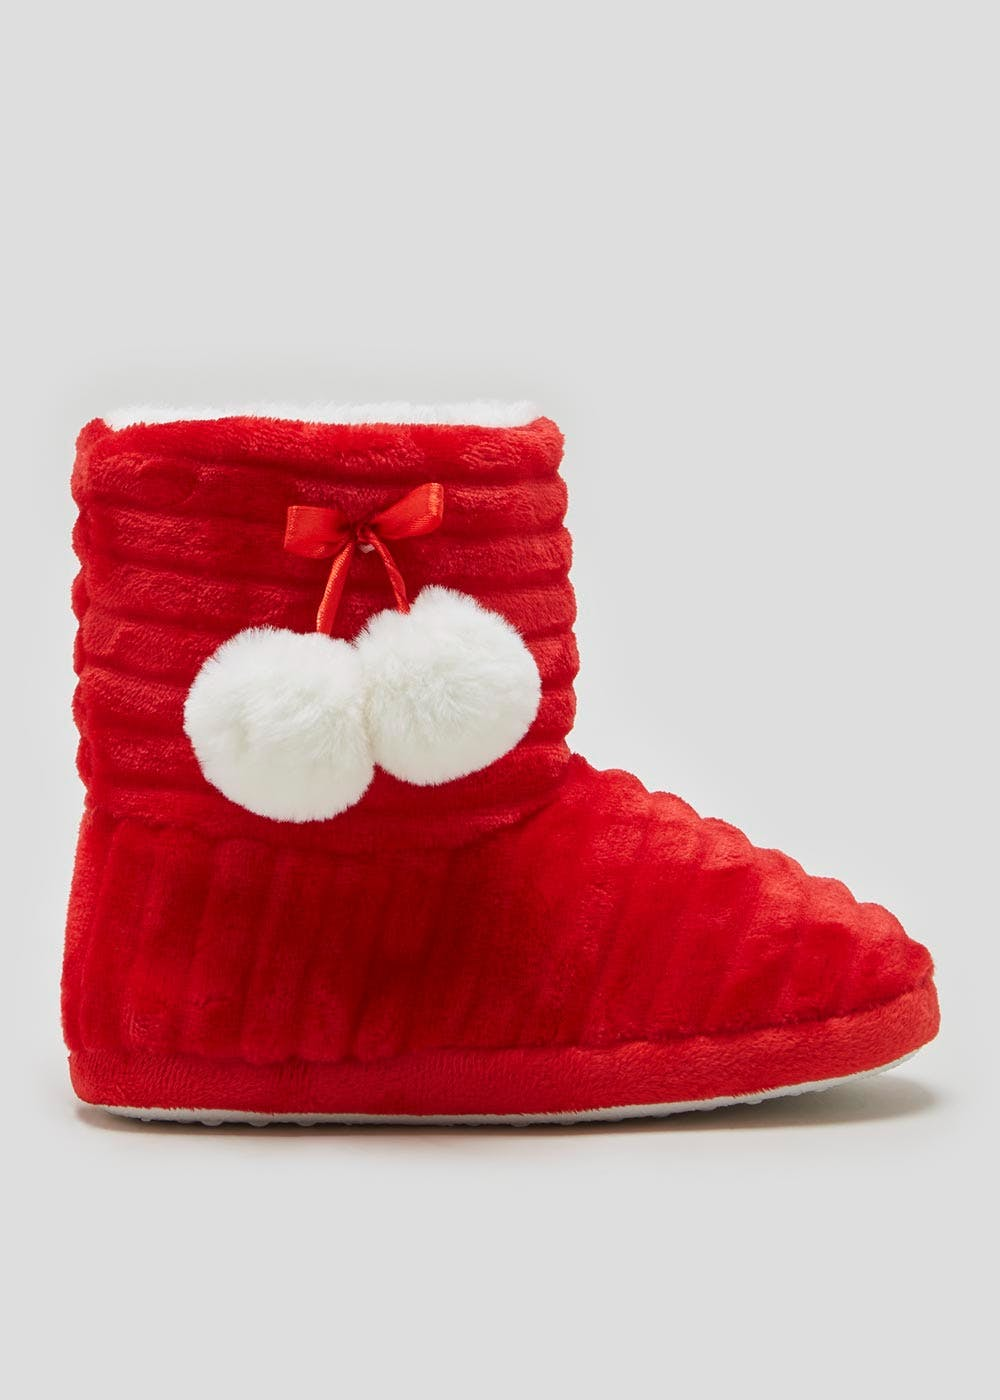 Christmas Boots For Girls.Girls Santa Christmas Slipper Boots Younger 10 Older 5